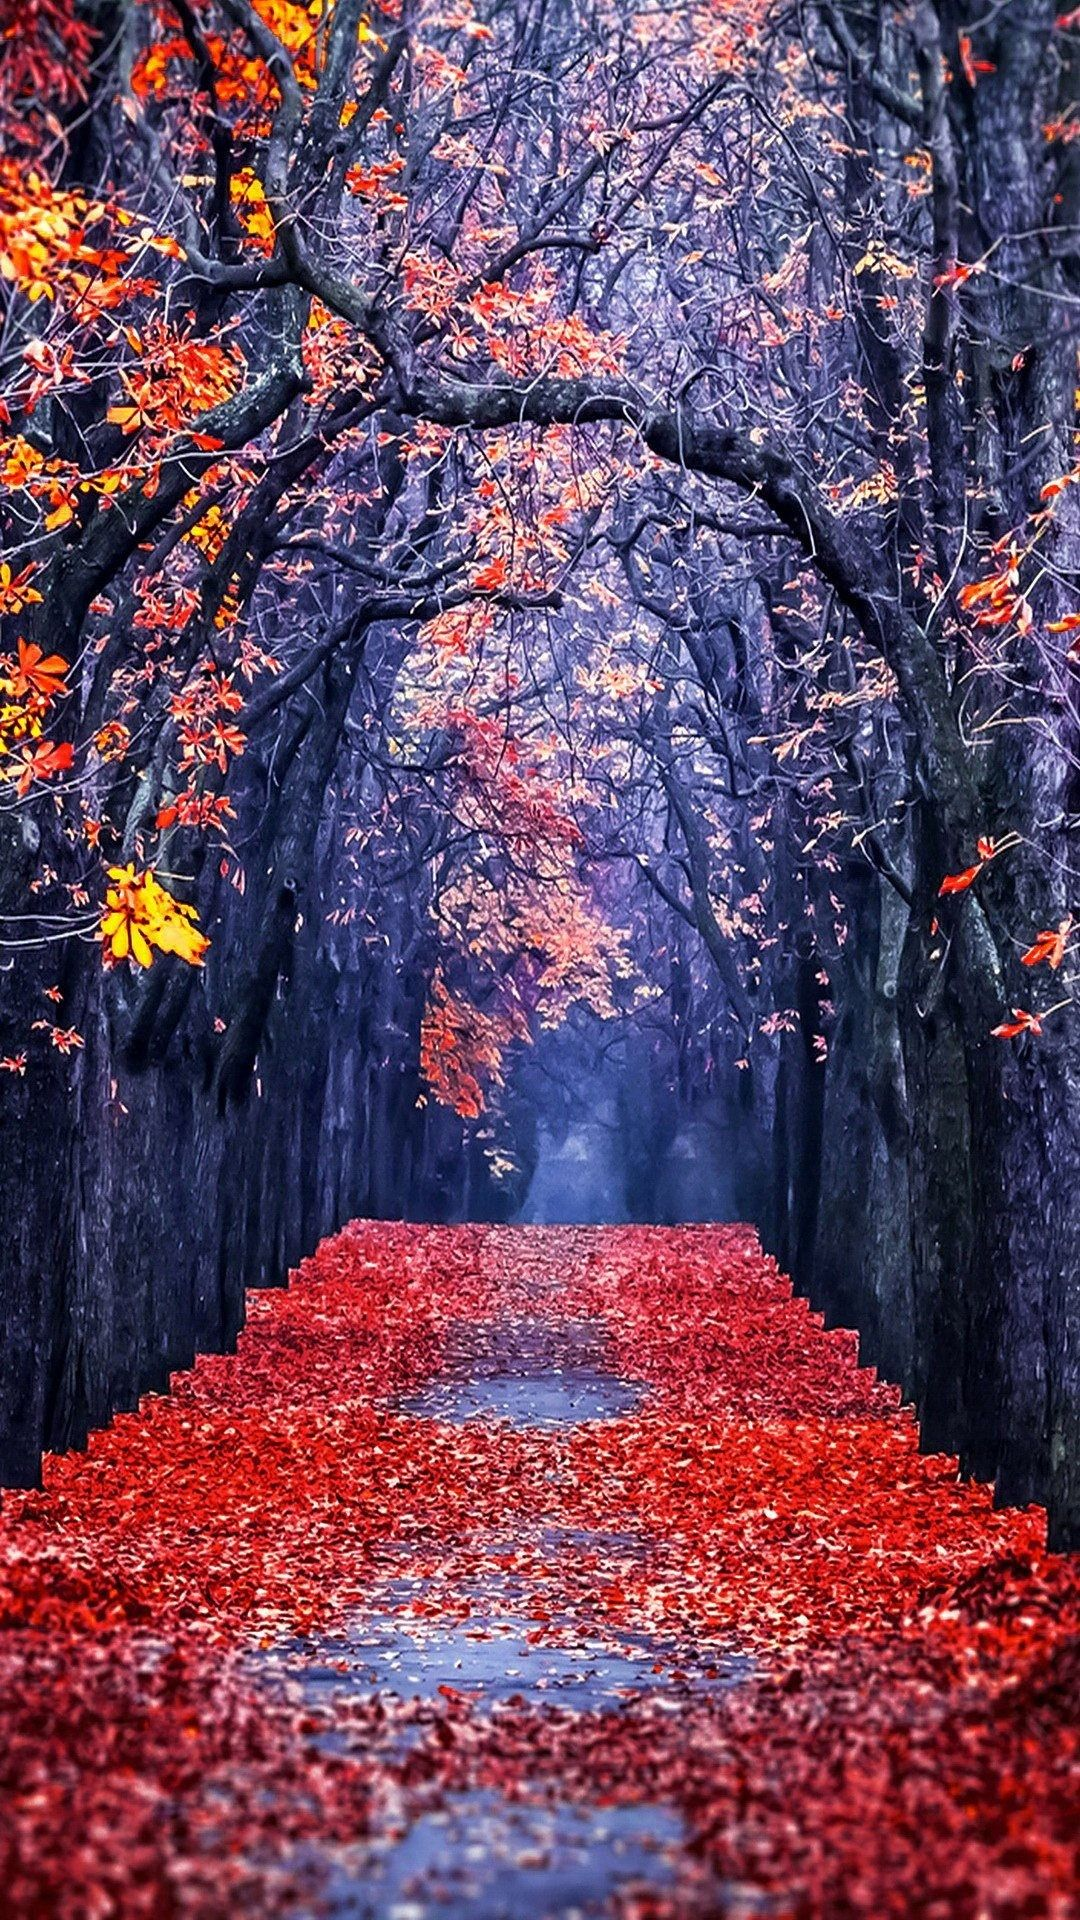 fall wallpaper for iphone, fall wallpaper iphone